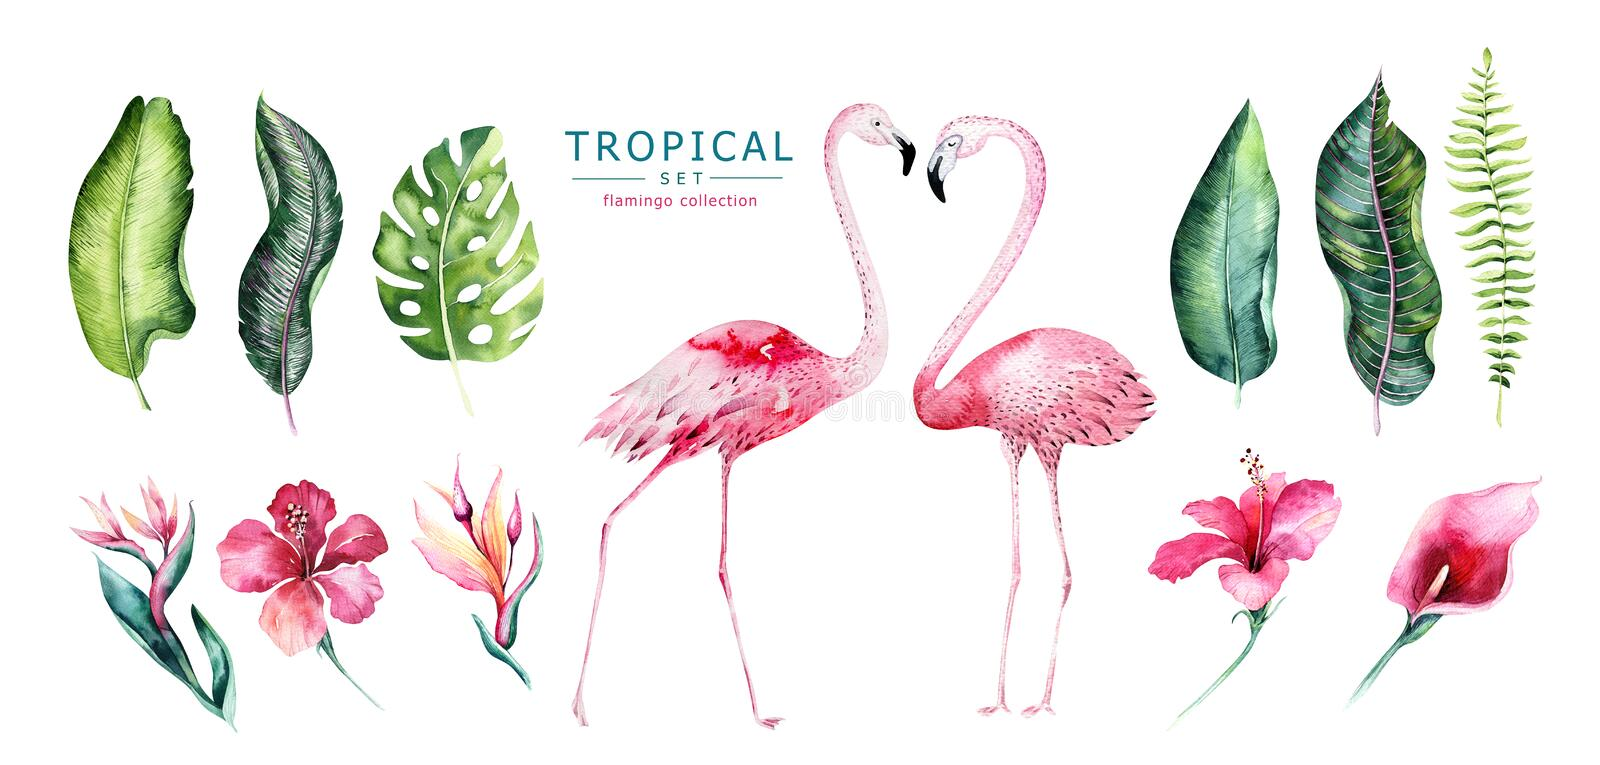 Hand drawn watercolor tropical birds set of flamingo. Exotic rose bird illustrations, jungle tree, brazil trendy art royalty free illustration